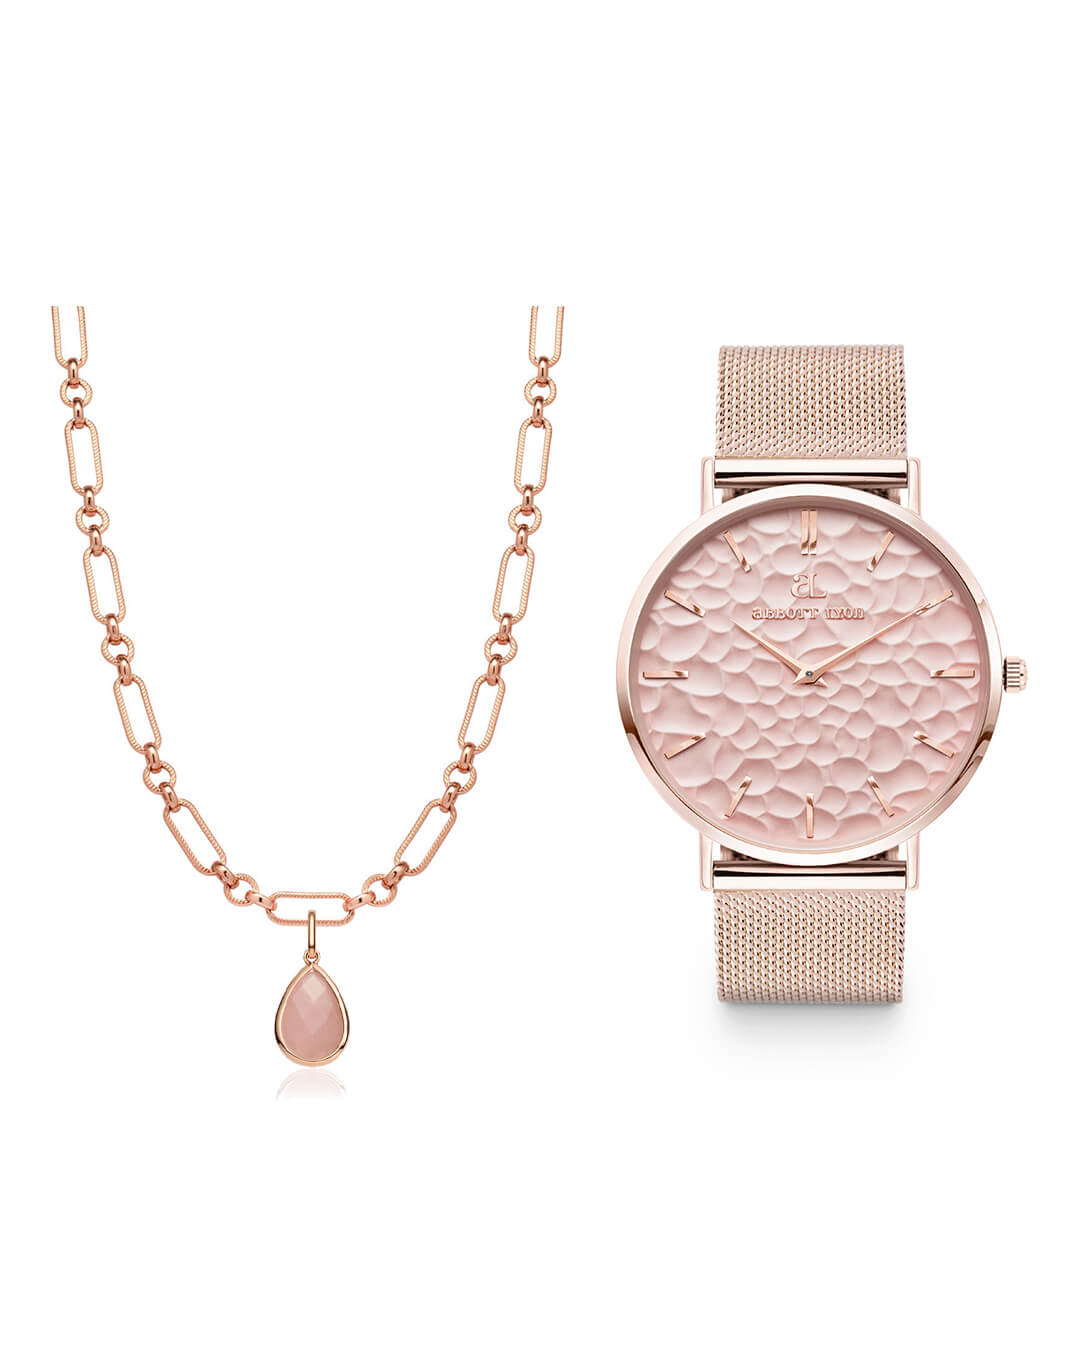 Blush Chain Pink La Ponche & Rose Quartz Figaro Gift Set